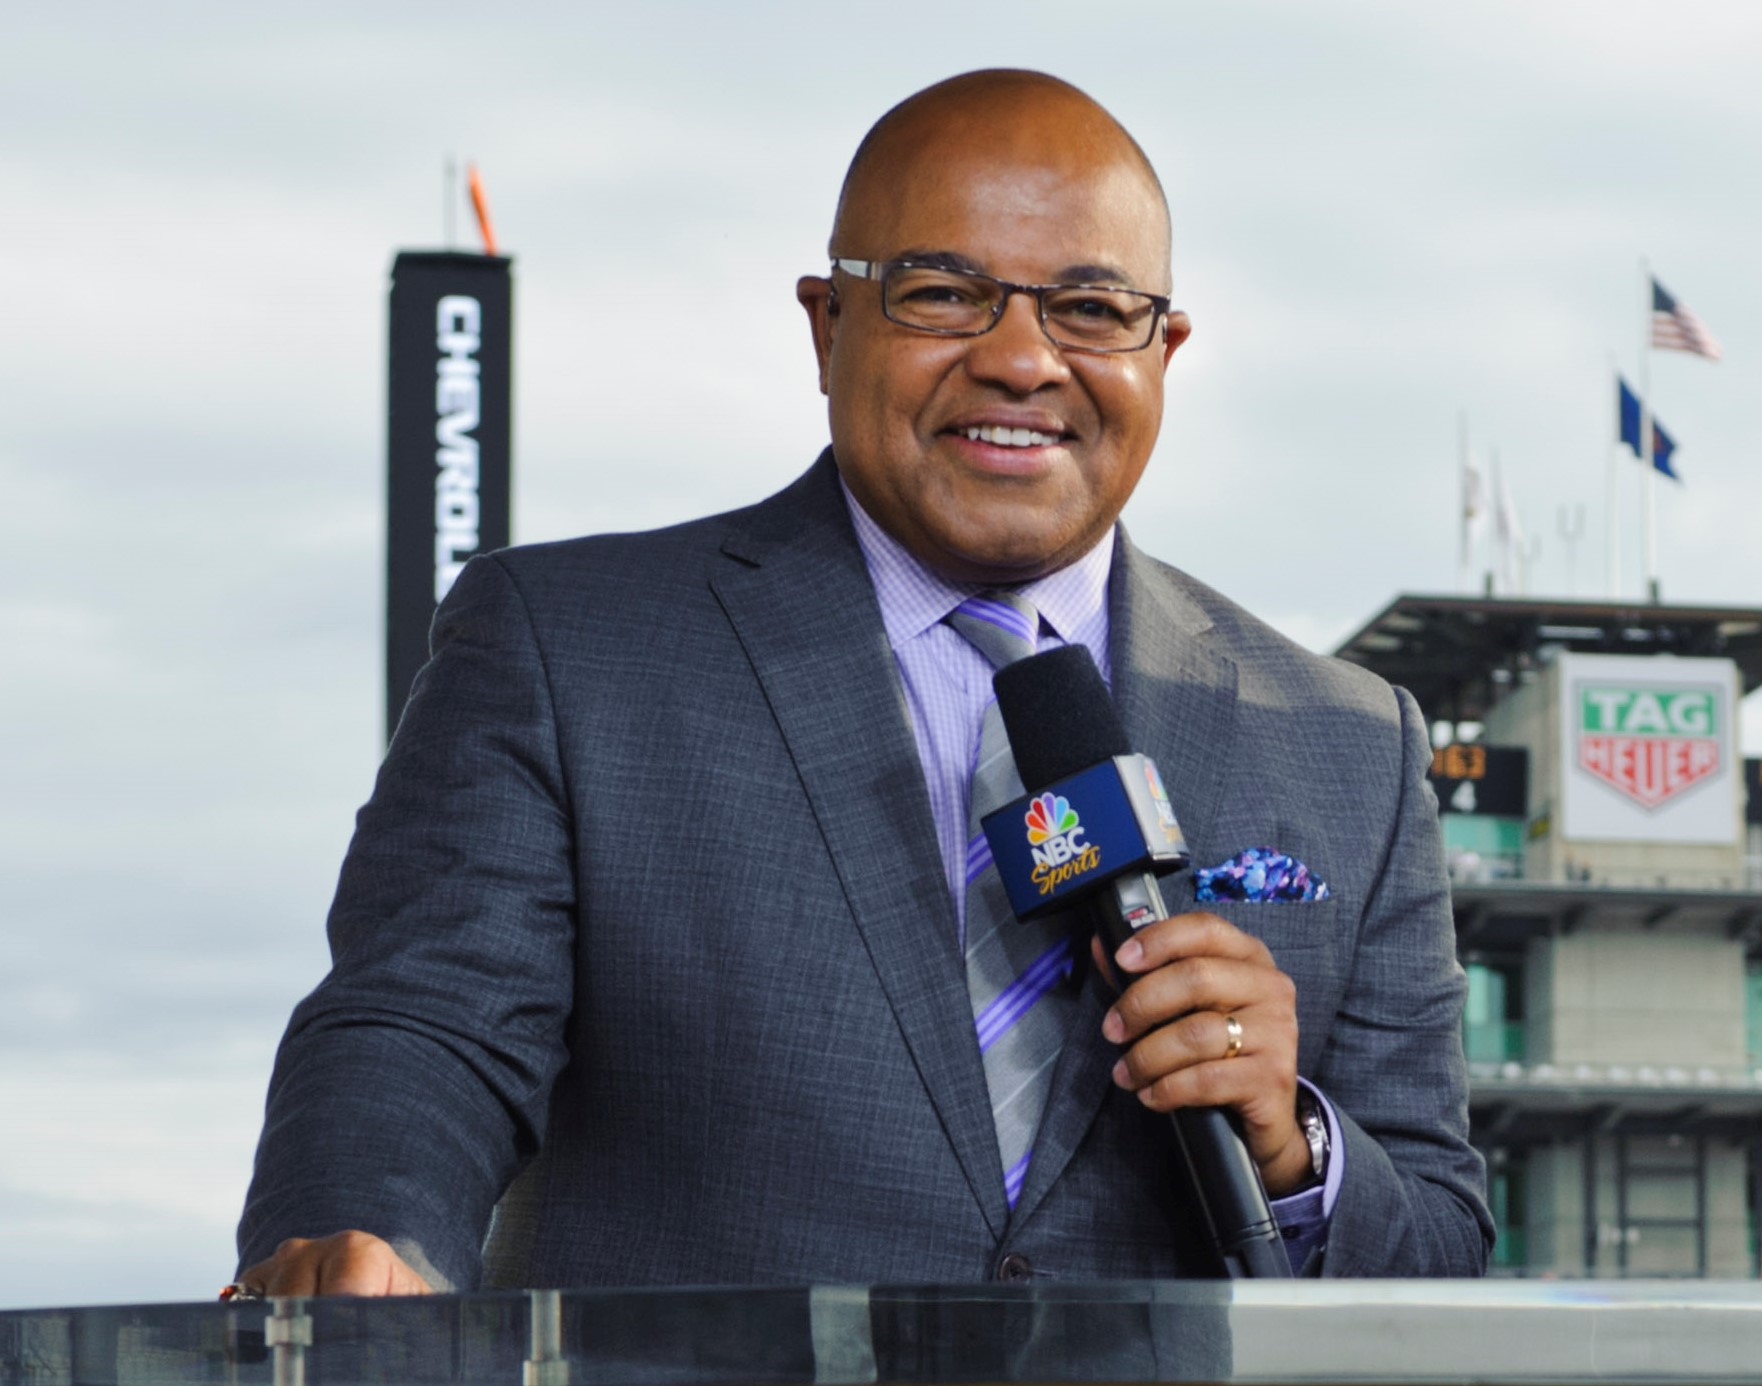 MIKE TIRICO TO ANCHOR NASCAR/INDYCAR CROSSOVER WEEKEND COVERAGE FROM  INDIANAPOLIS JULY 4-5 ON NBC - NBC Sports PressboxNBC Sports Pressbox